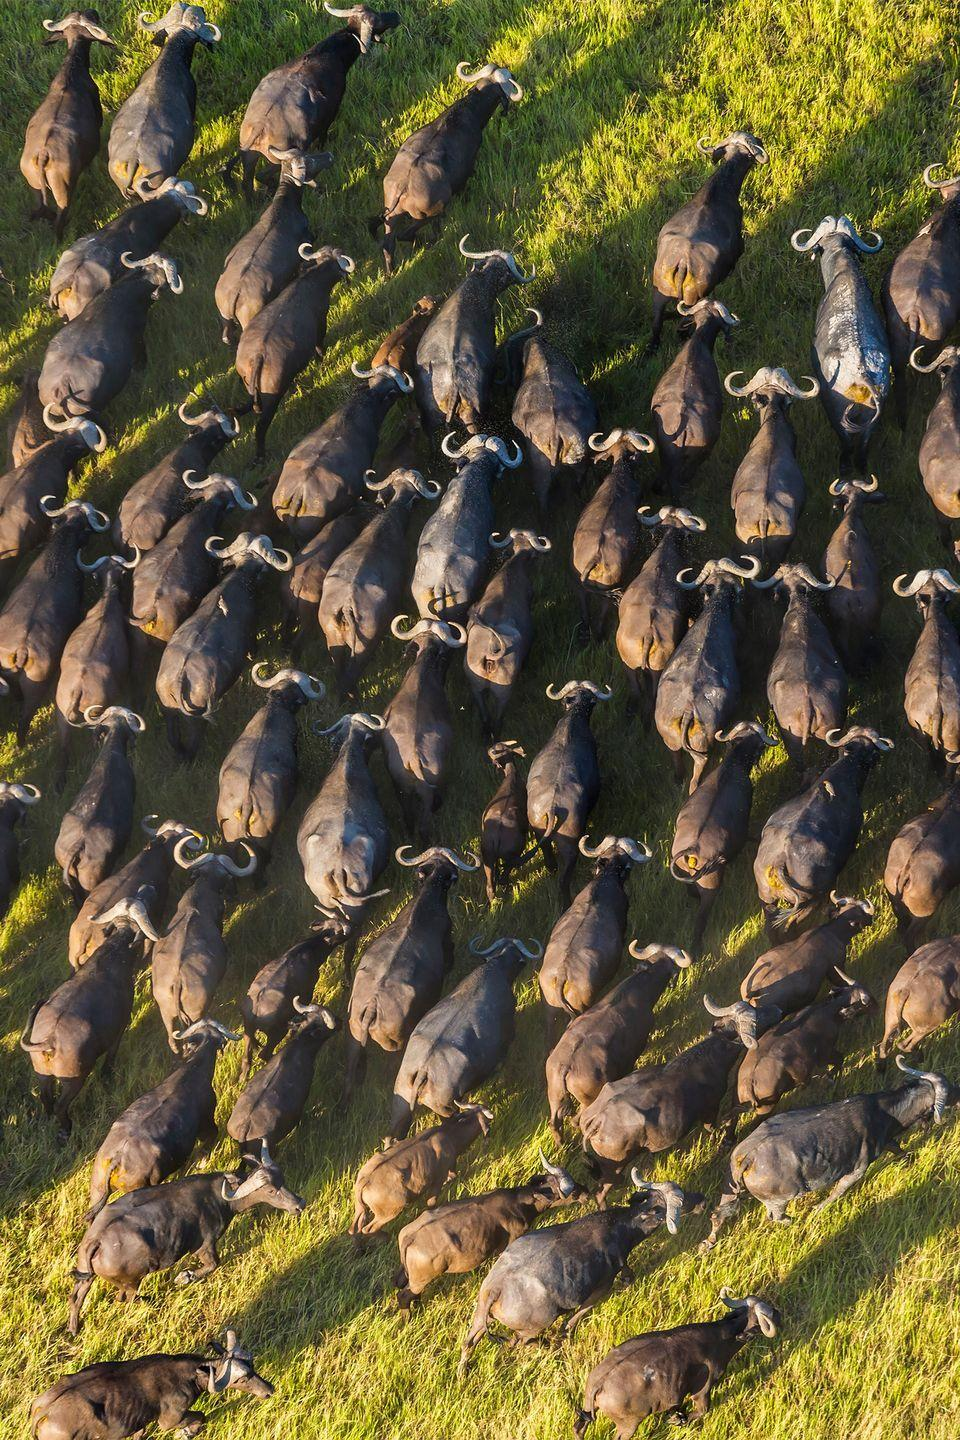 <p>Researchers have noted that African buffalo herds practice voting. The process only involves adult females, and it all takes place with physical cues. It happens when individual buffaloes register their travel preferences by standing up, looking in one direction, and then lying back down.</p>